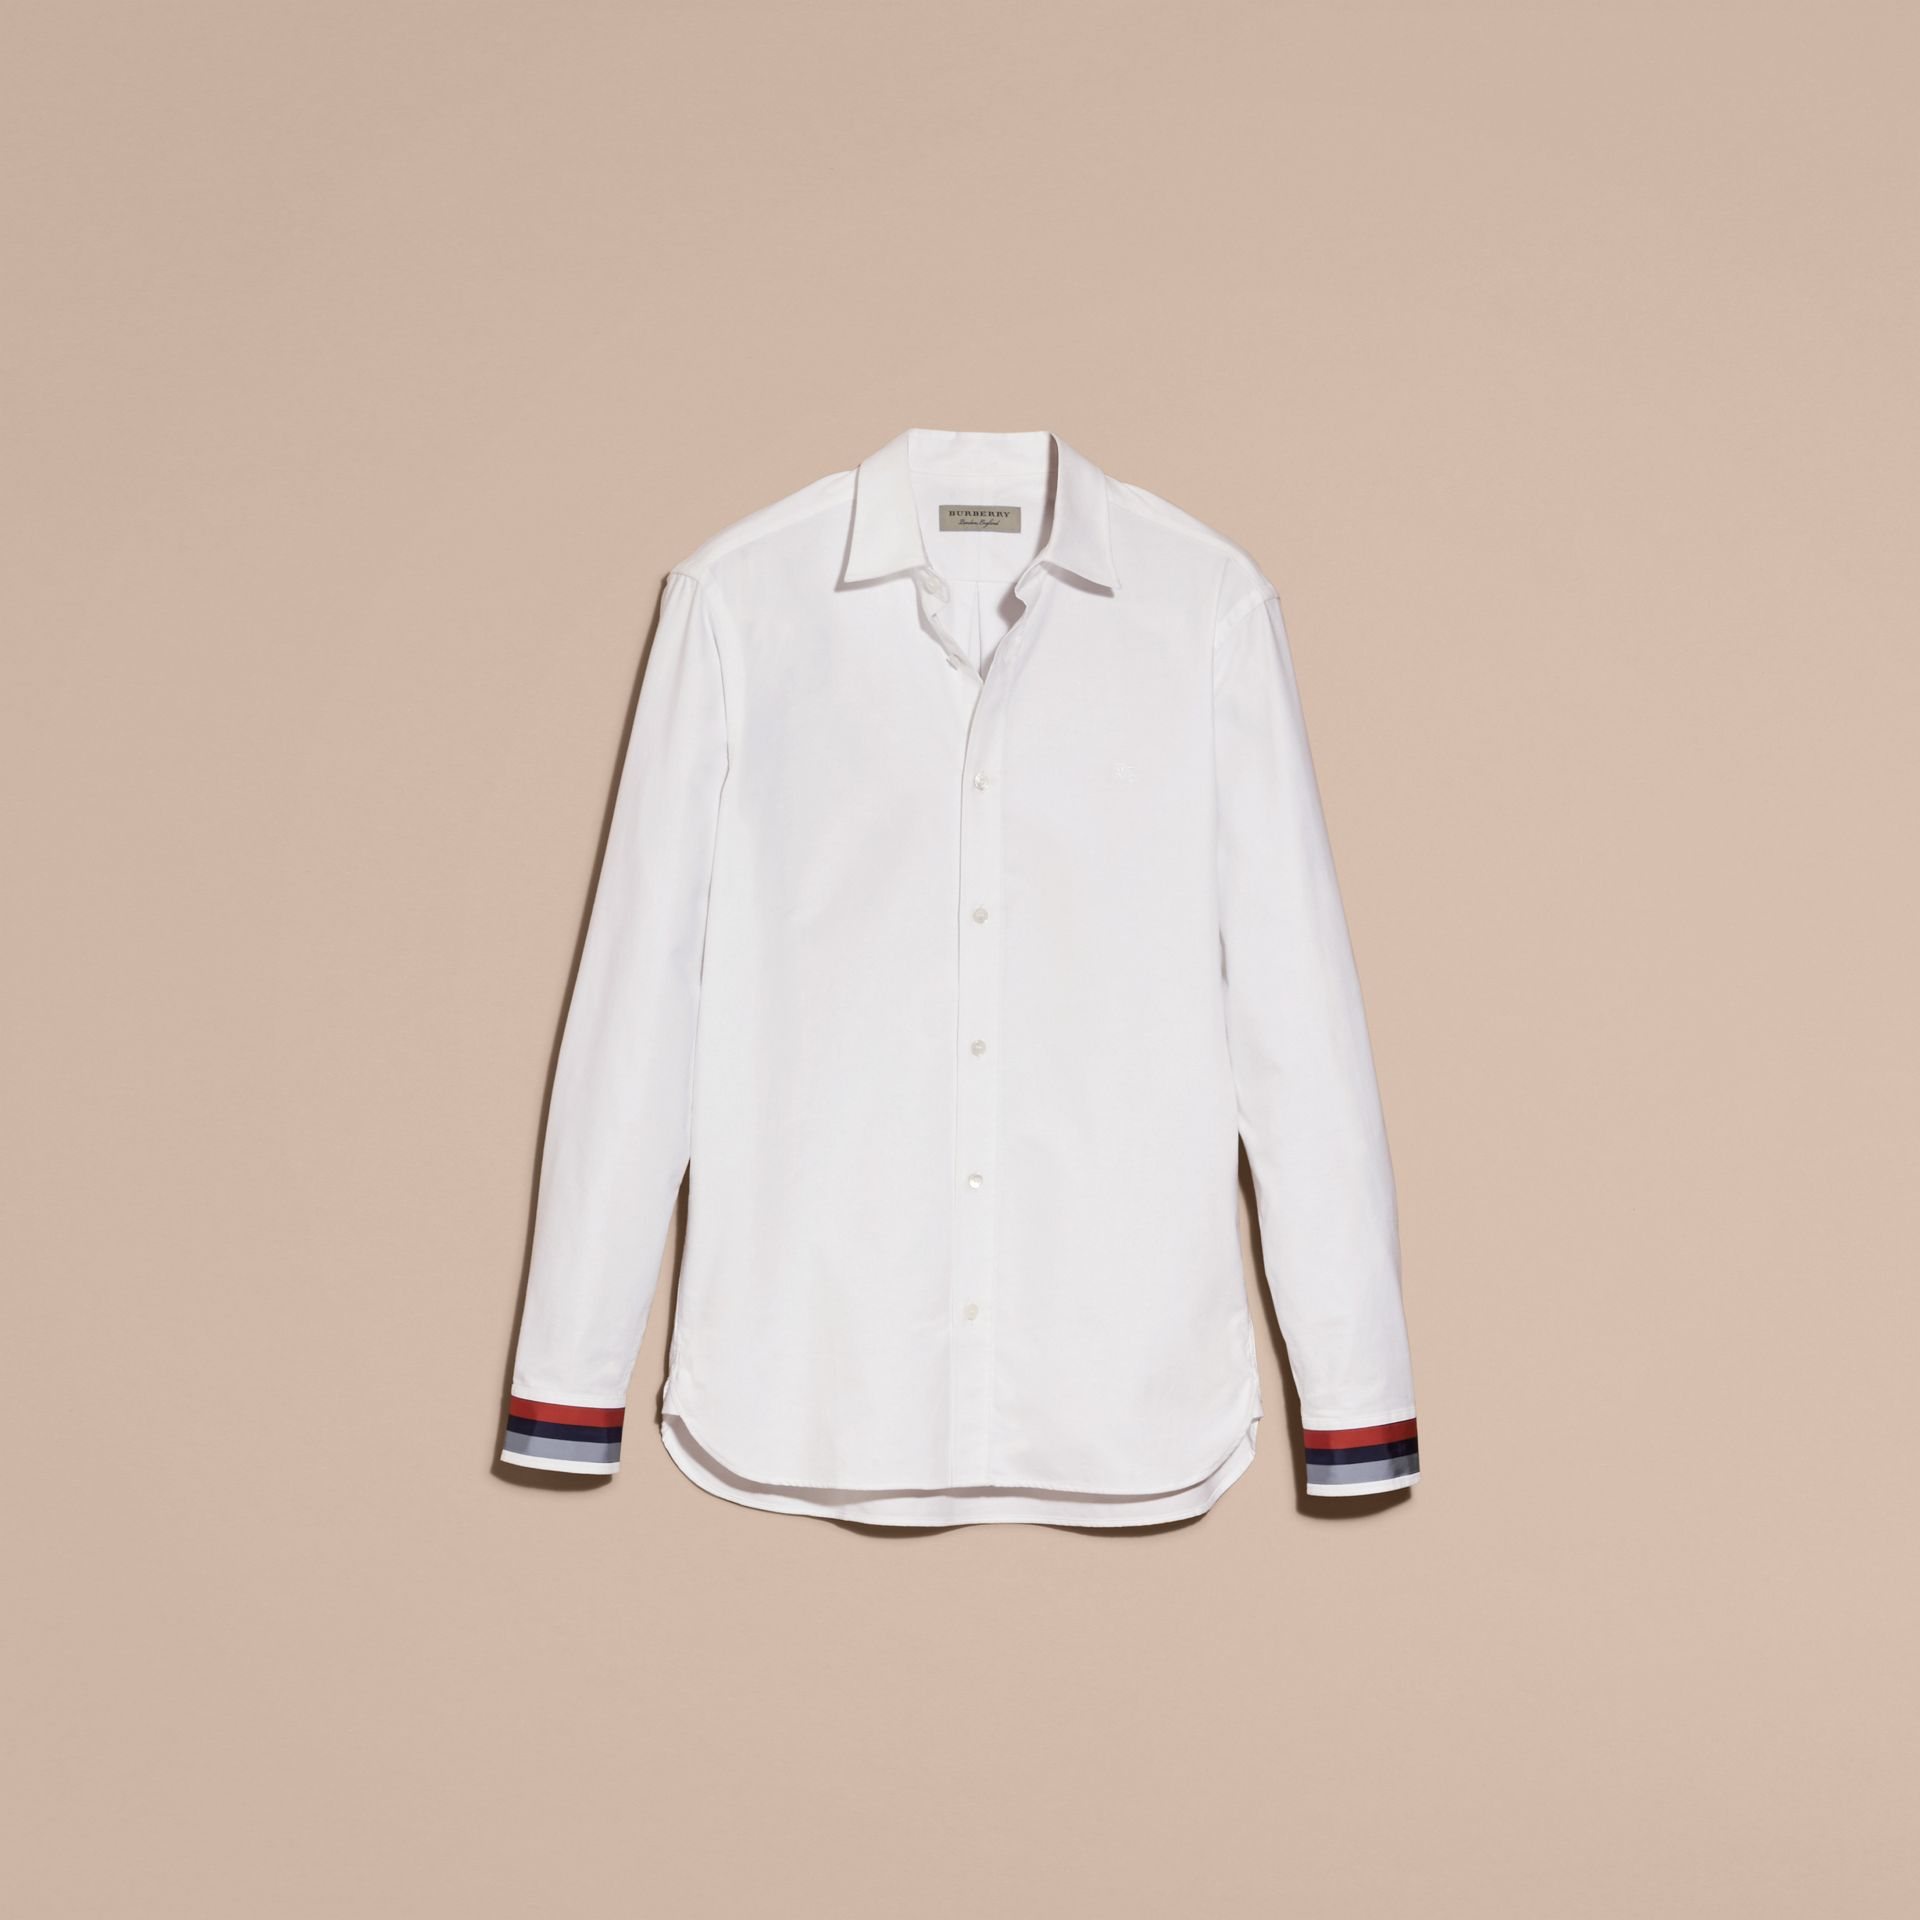 White Oxford Cotton Shirt with Regimental Cuff Detail White - gallery image 4